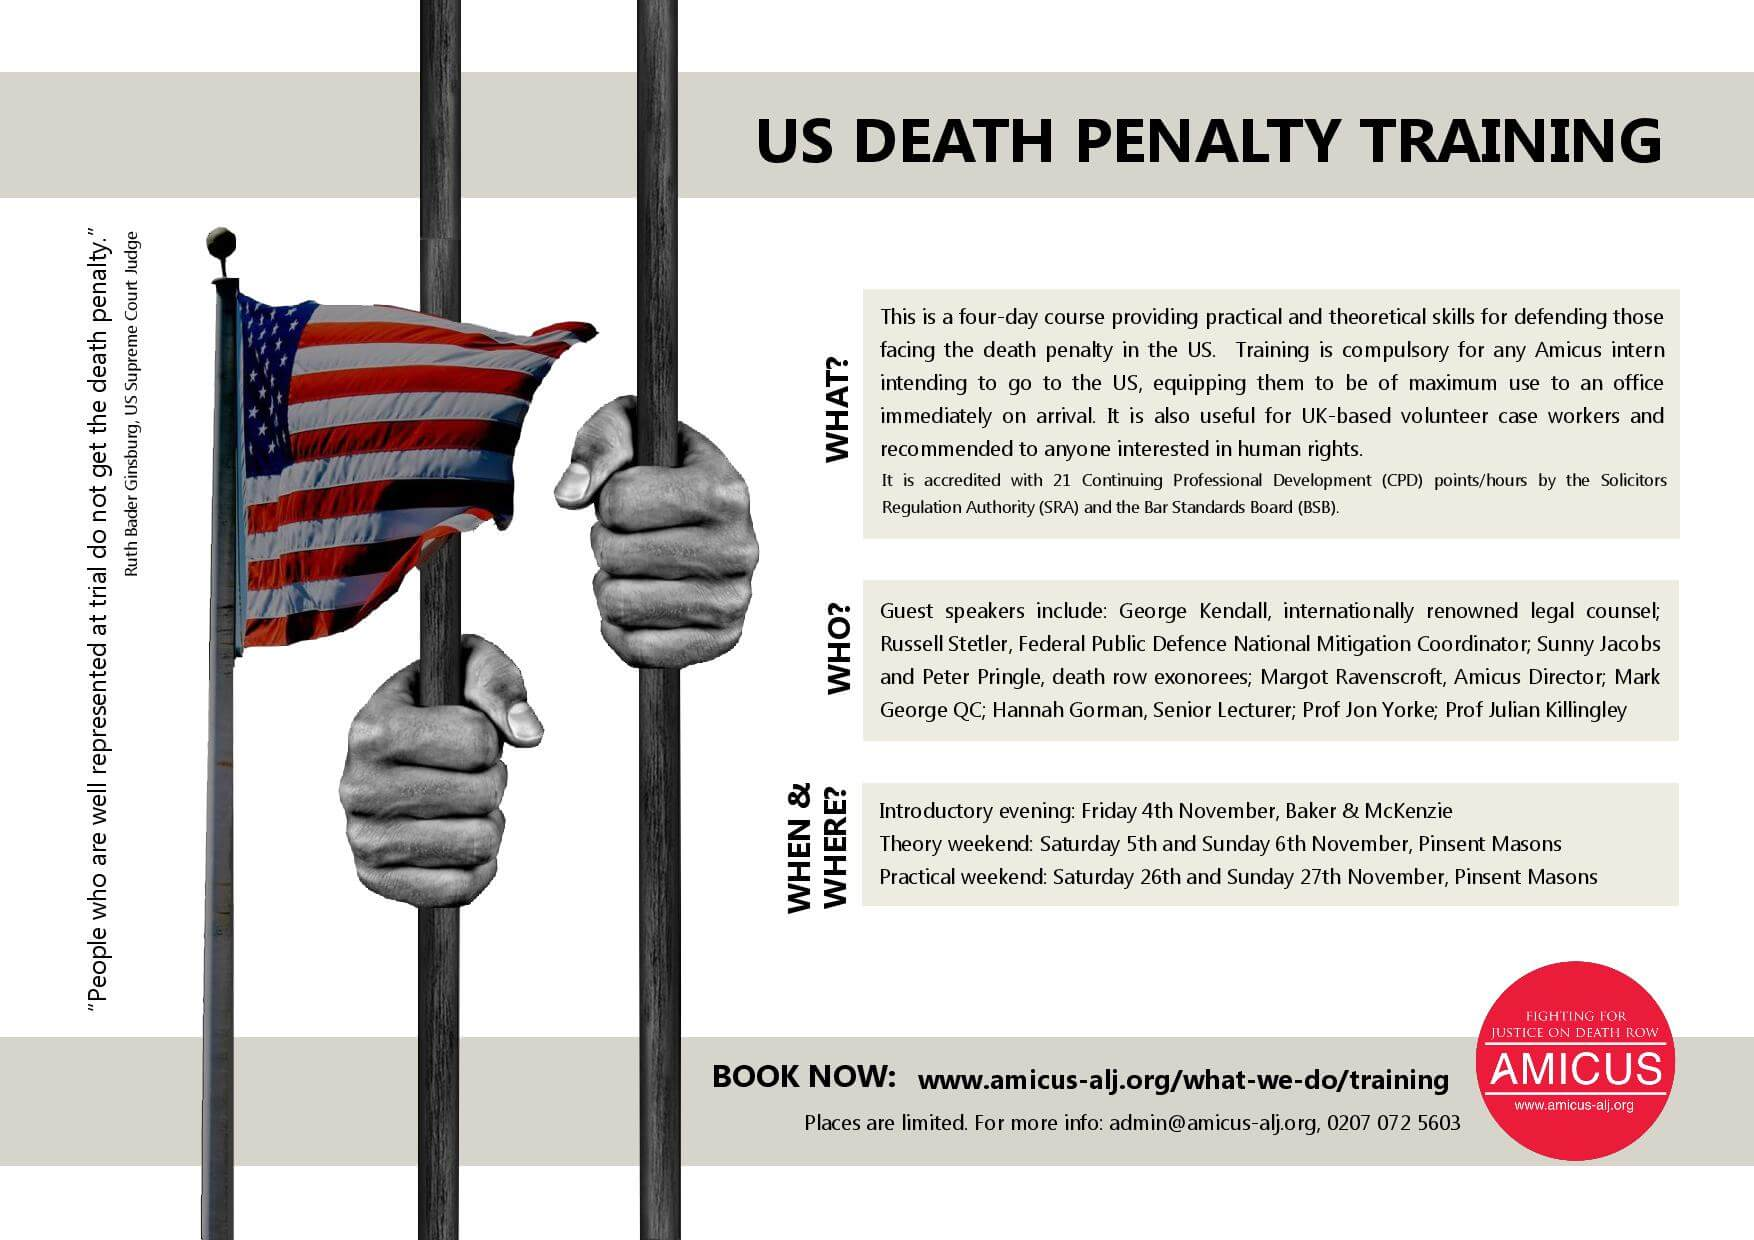 Amicus-US Death Penalty Training Session